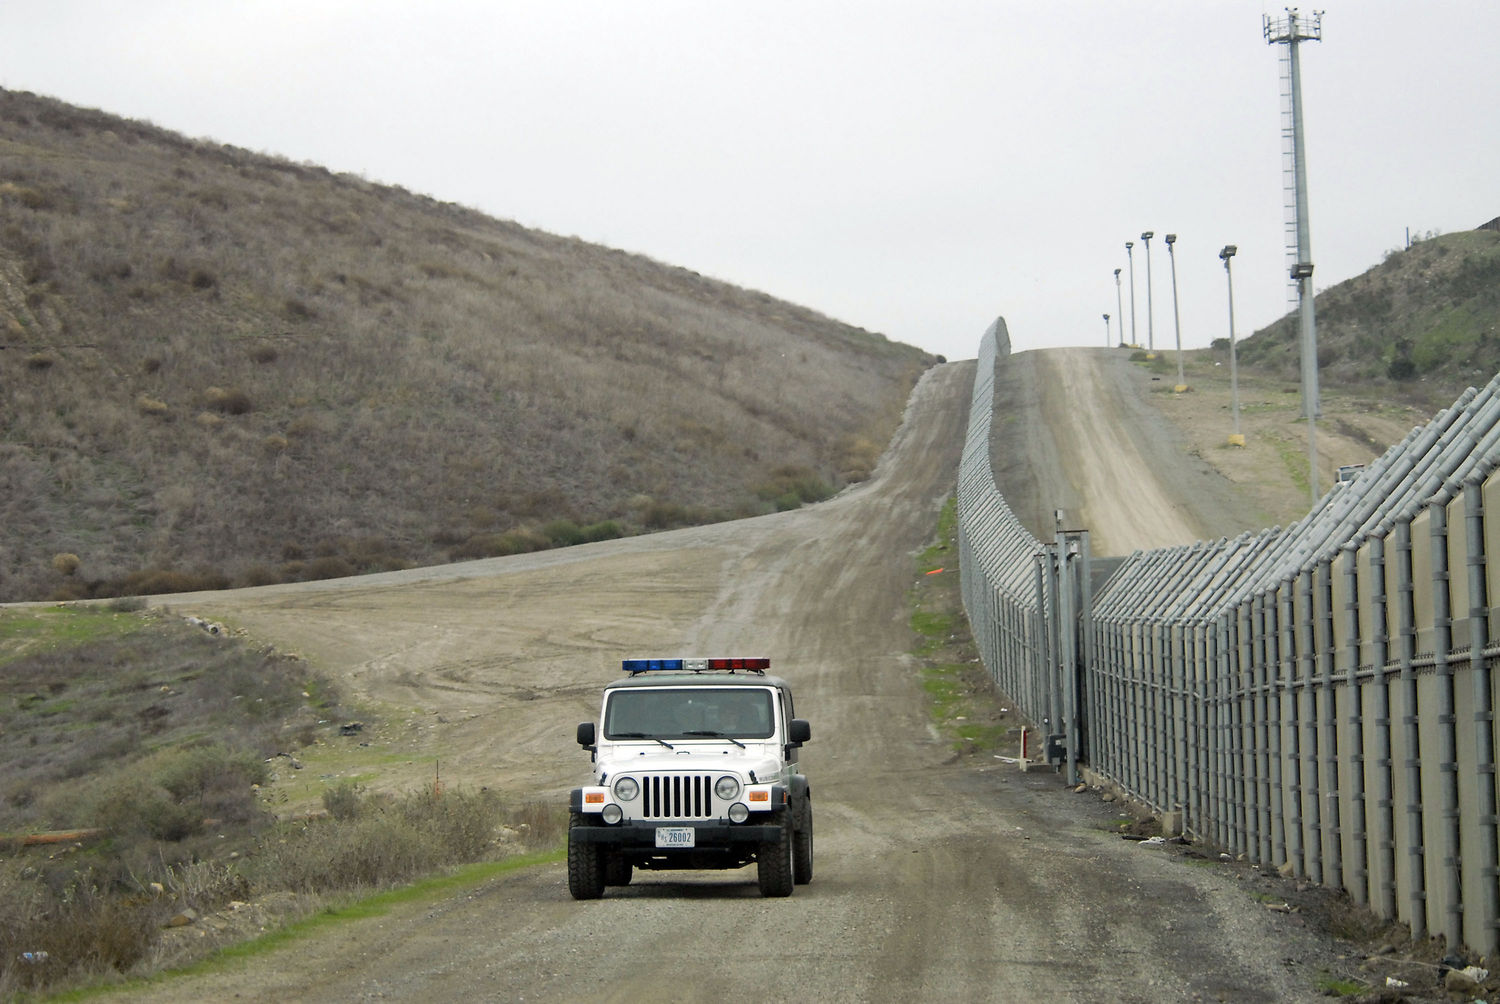 A United States Border Patrol vehicle cruises along the primary and secondary fence line on the Tijuana, Mexico border in San Diego, December 20, 2007. The area has been the site of alleged increased violence against the Border Patrol. The Border Patrol says its agents were attacked nearly 1,000 times during a one-year period along the Mexican border, typically by assailants hurling rocks, bottles and bricks. Now the agency is responding with tear gas and powerful pepper-spray weapons firing into Mexico. (UPI Photo/Earl Cryer)